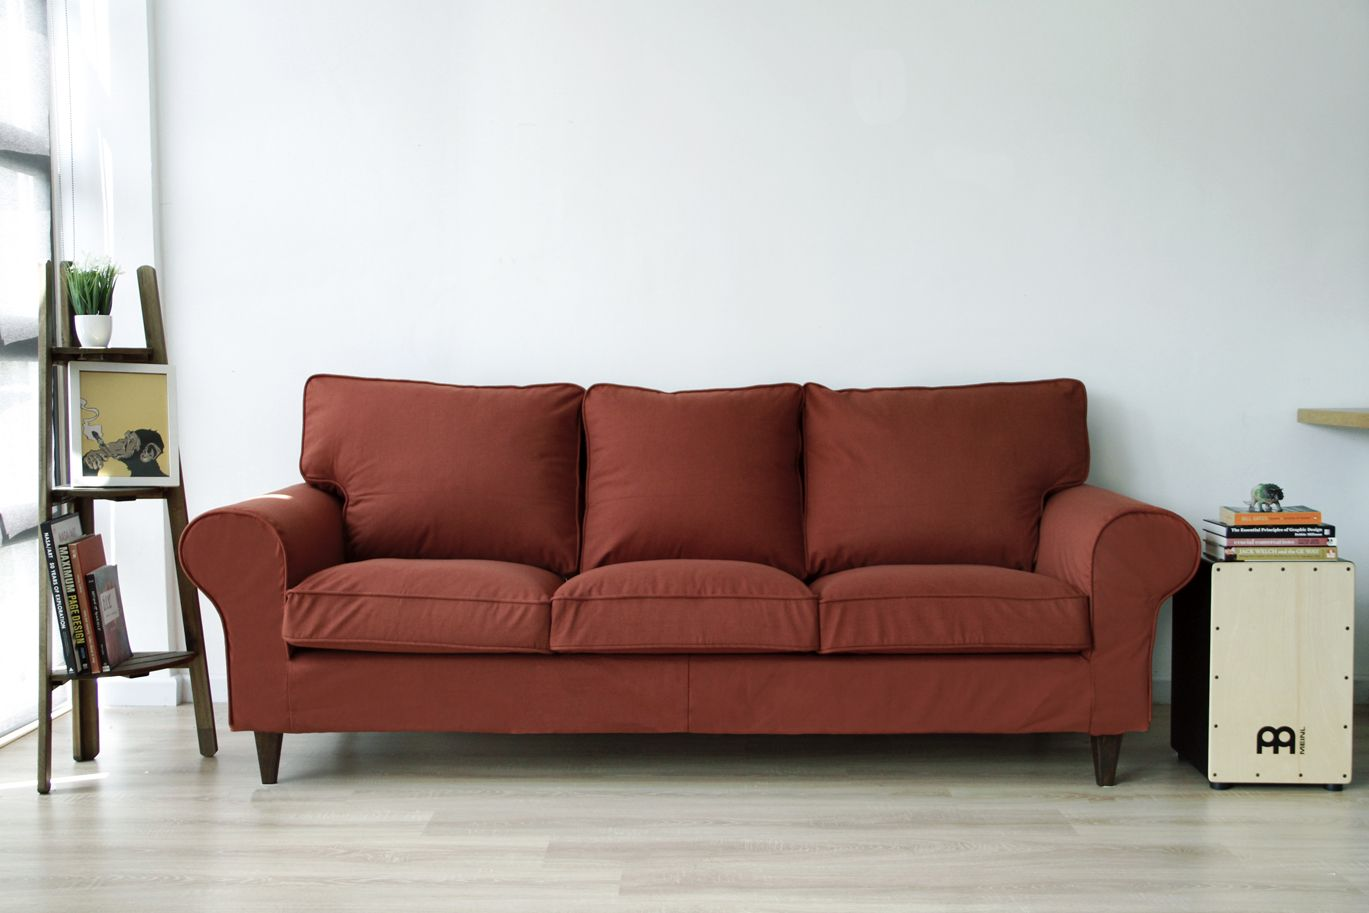 Ikea Rp Sofa Bed Covers 2 Seater Chestfield Cover Replacement Architecture